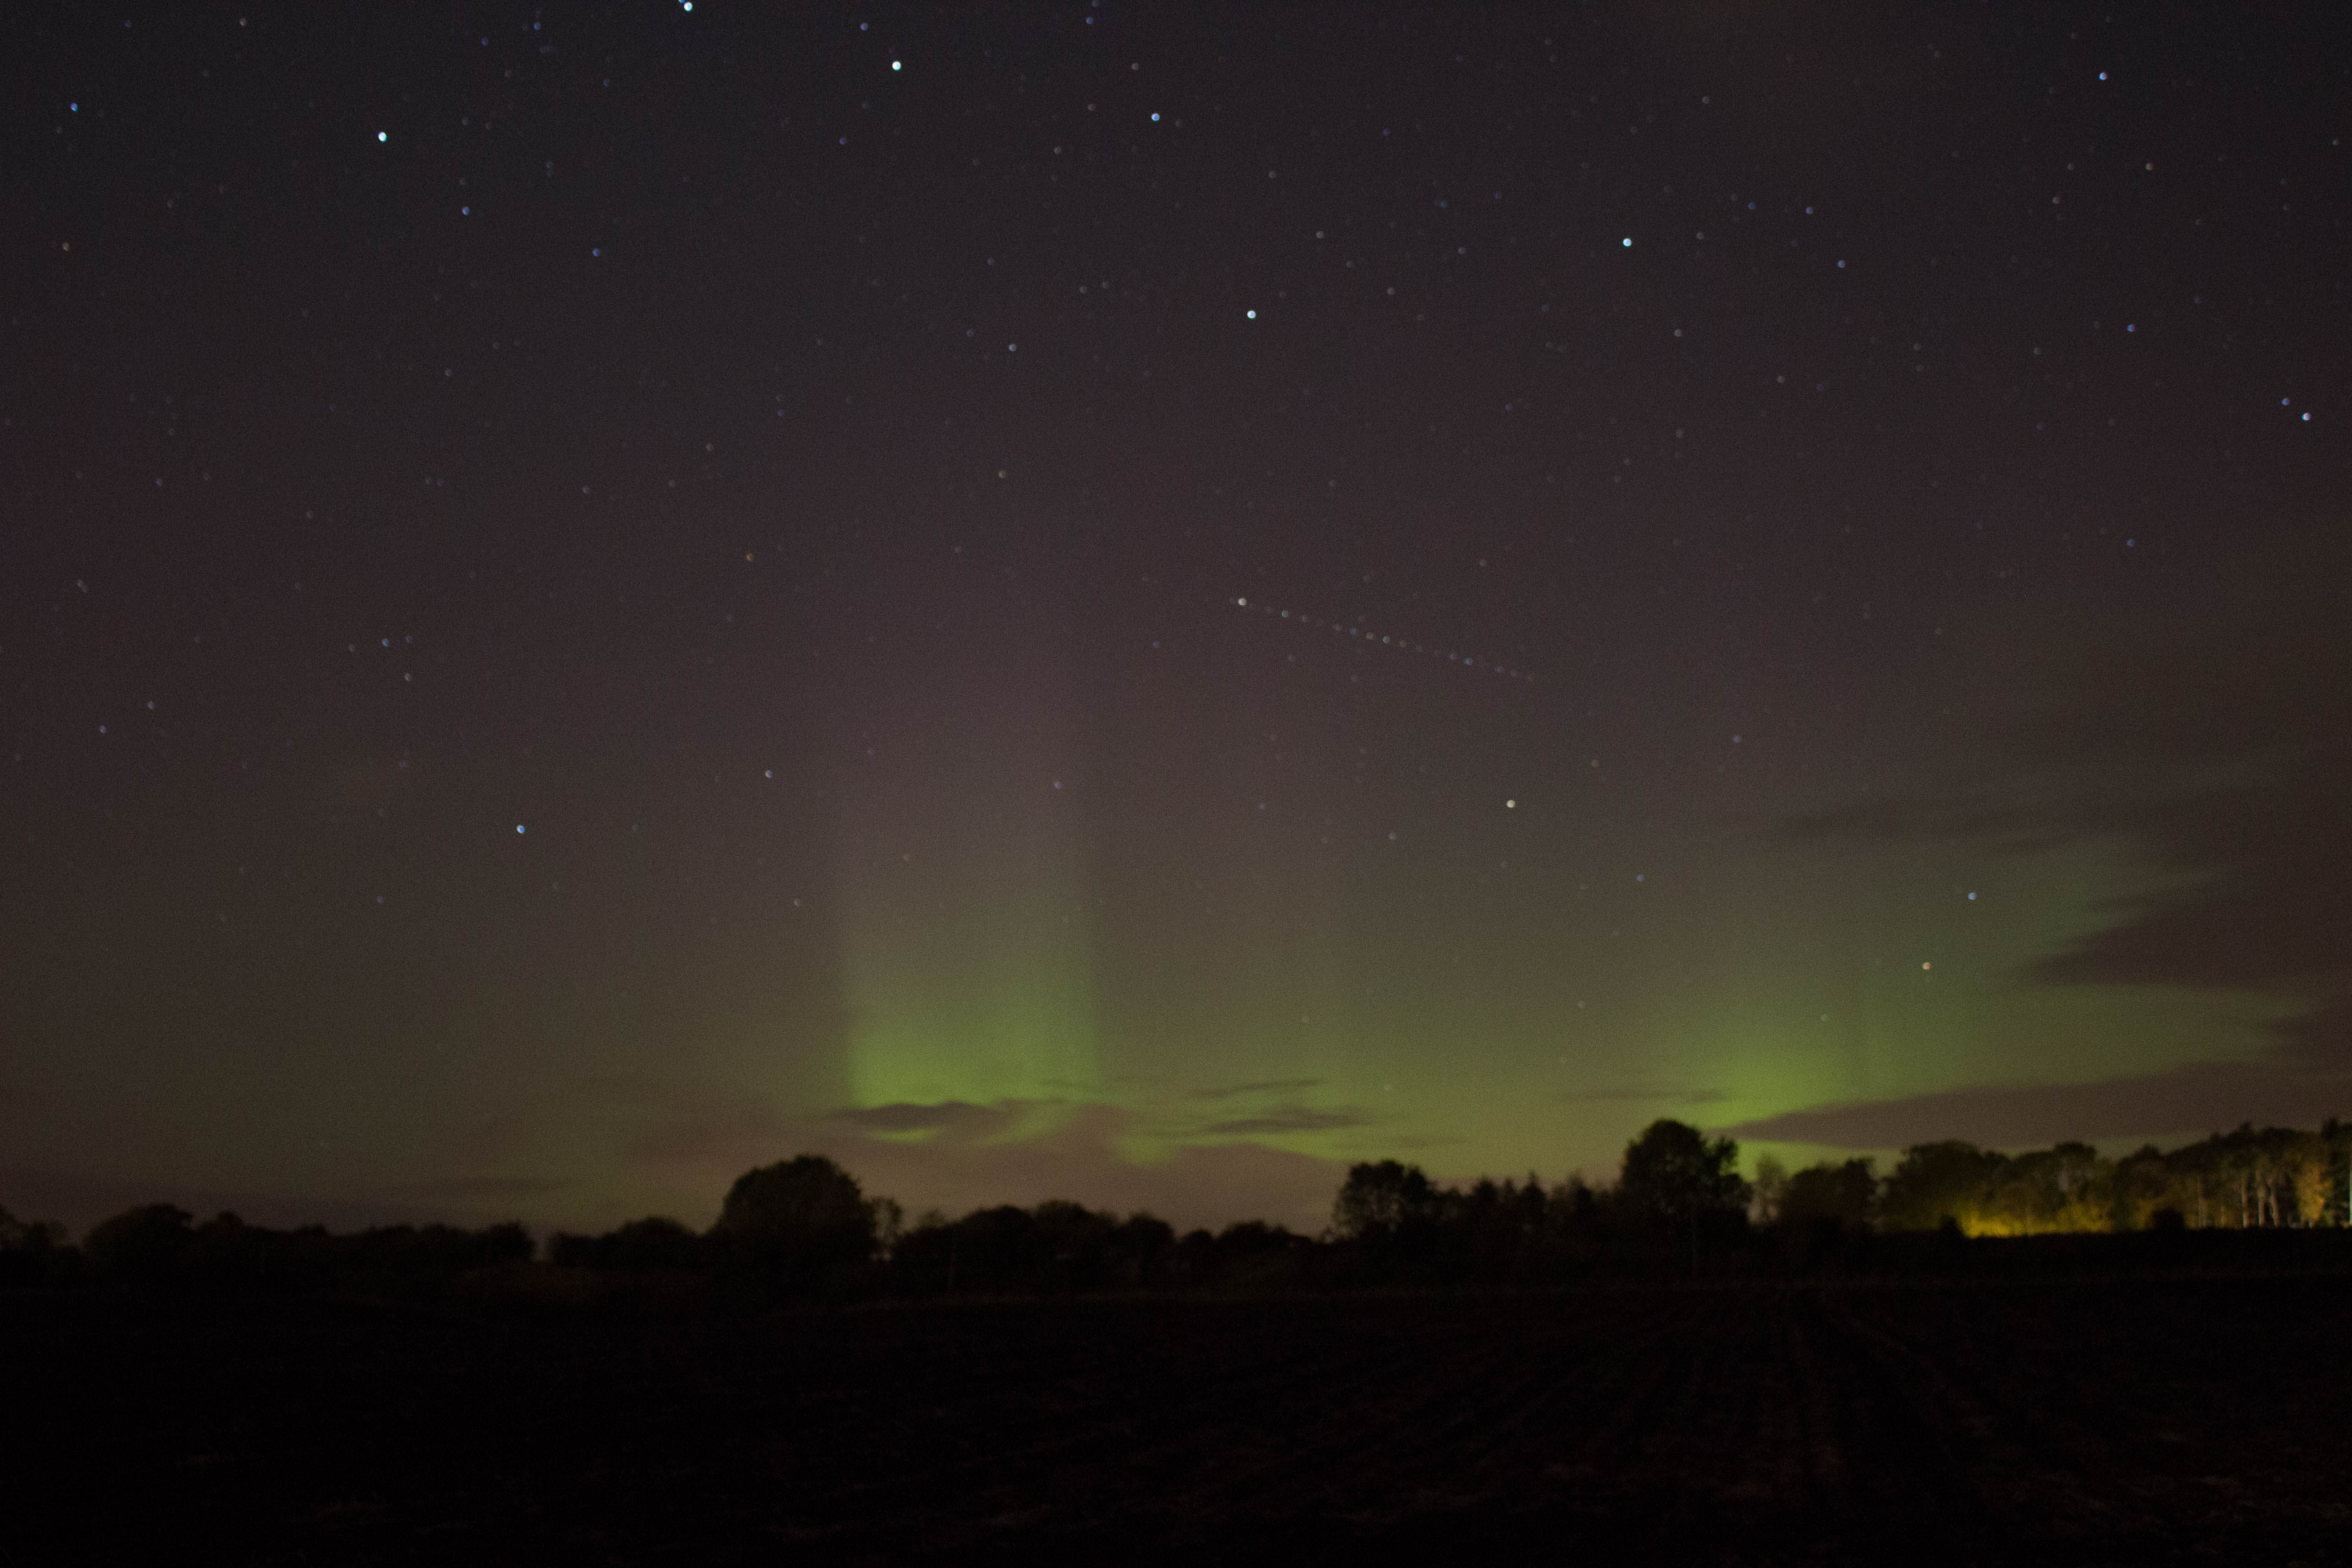 Aurora By Andy Heenan 26.10.16 20.07